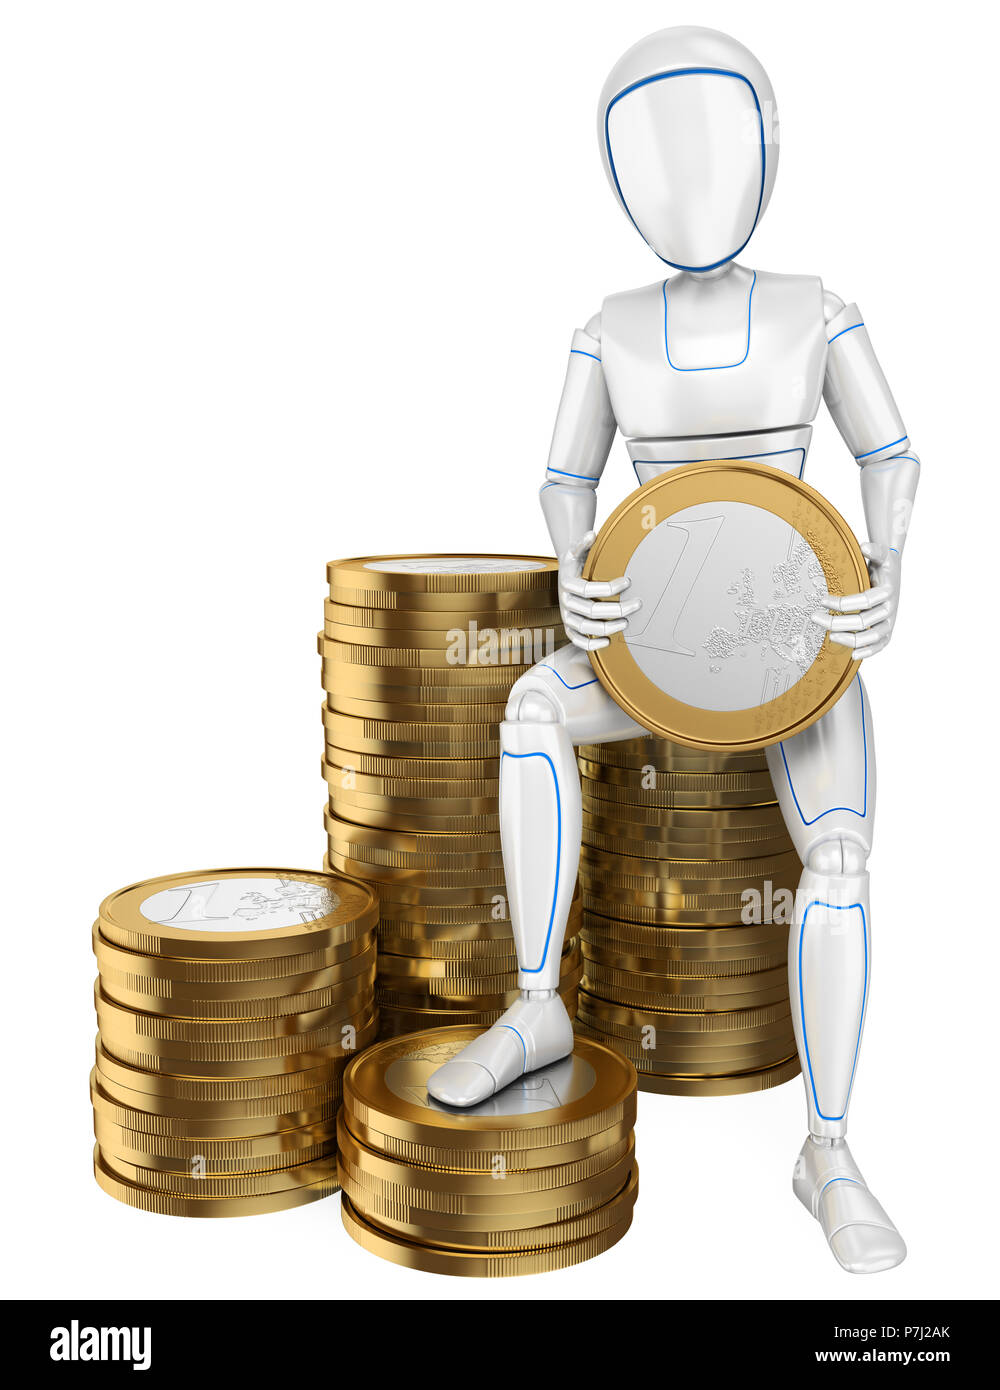 3d futuristic android illustration. Humanoid robot sitting on a pile of euro coins. Isolated white background. - Stock Image